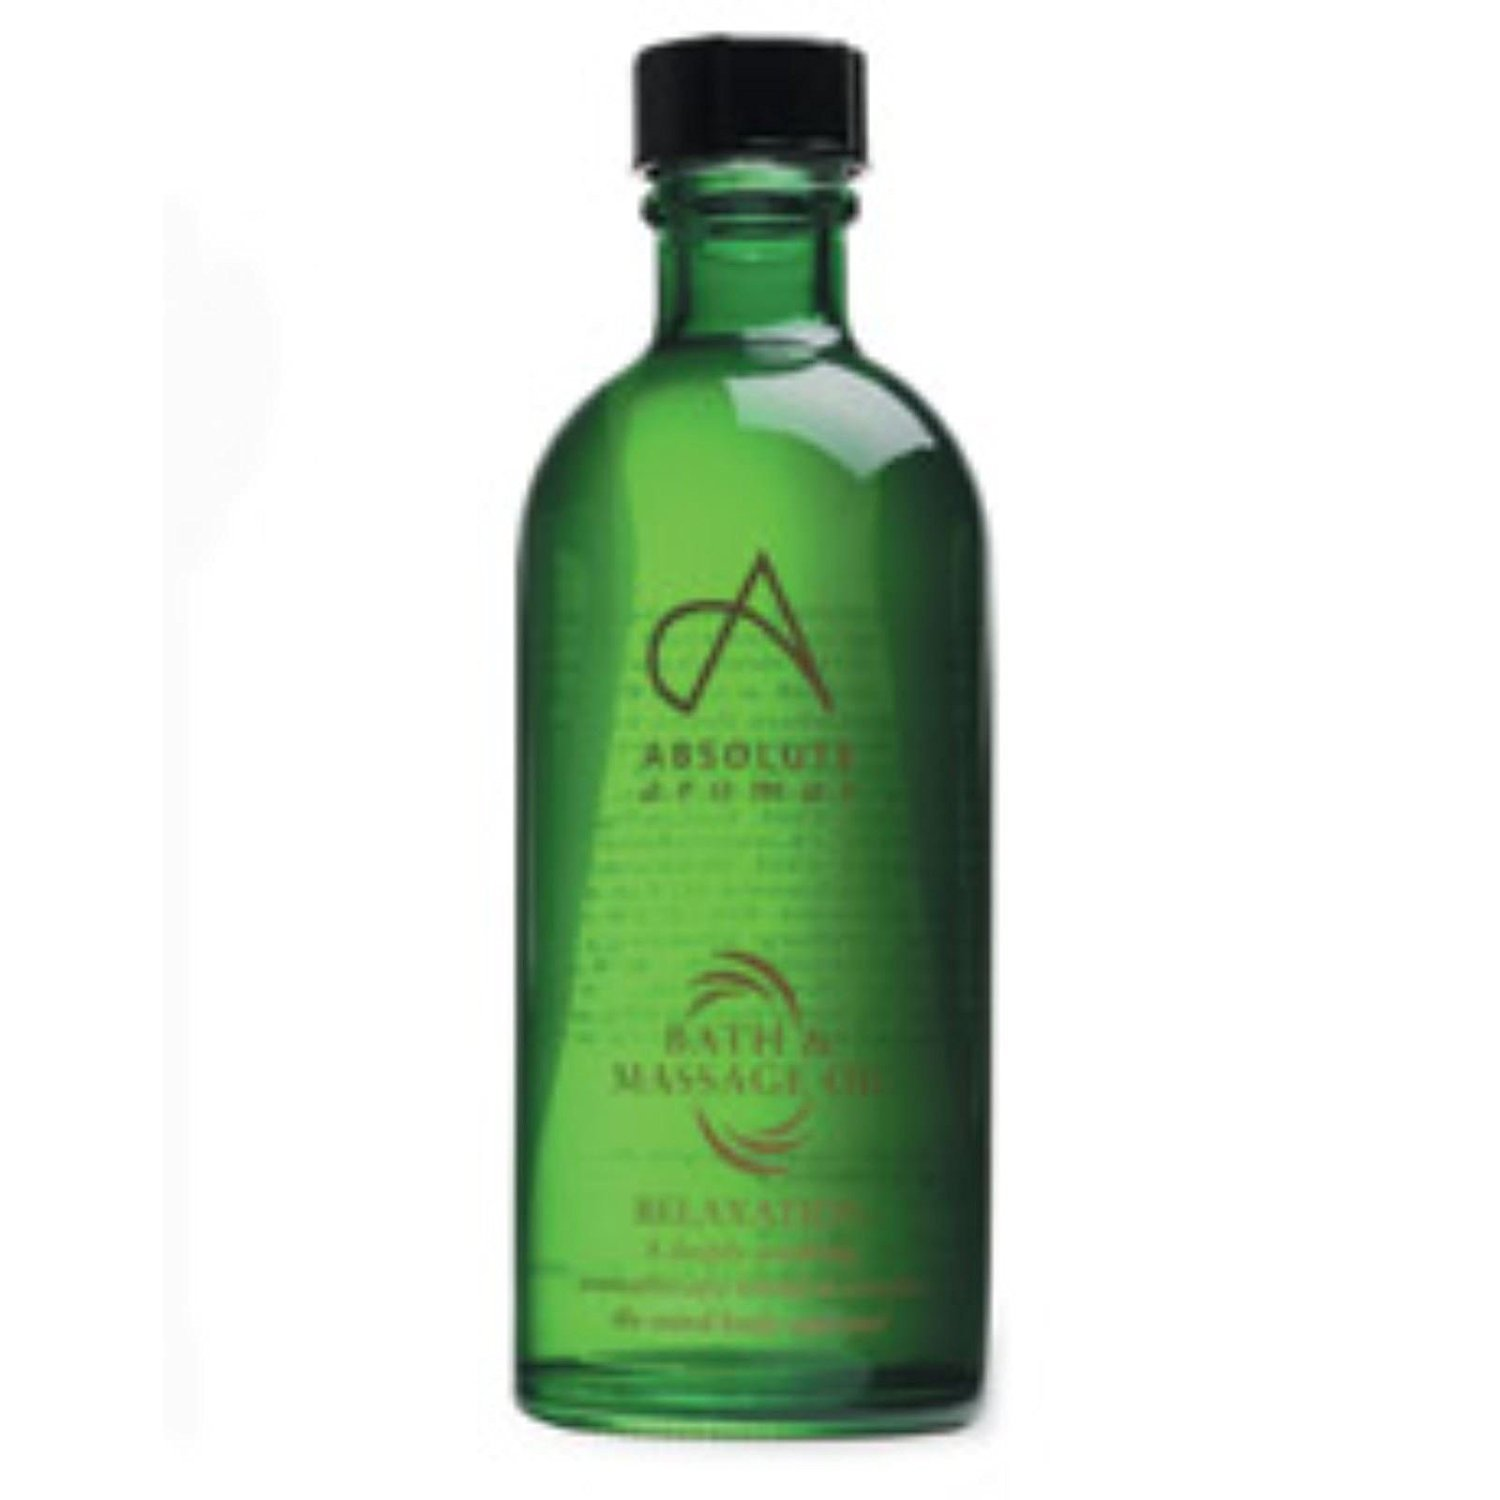 Absolute Aromas Relaxation Bath and Massage Oil 100ml Absolute Aromas Ltd 47586